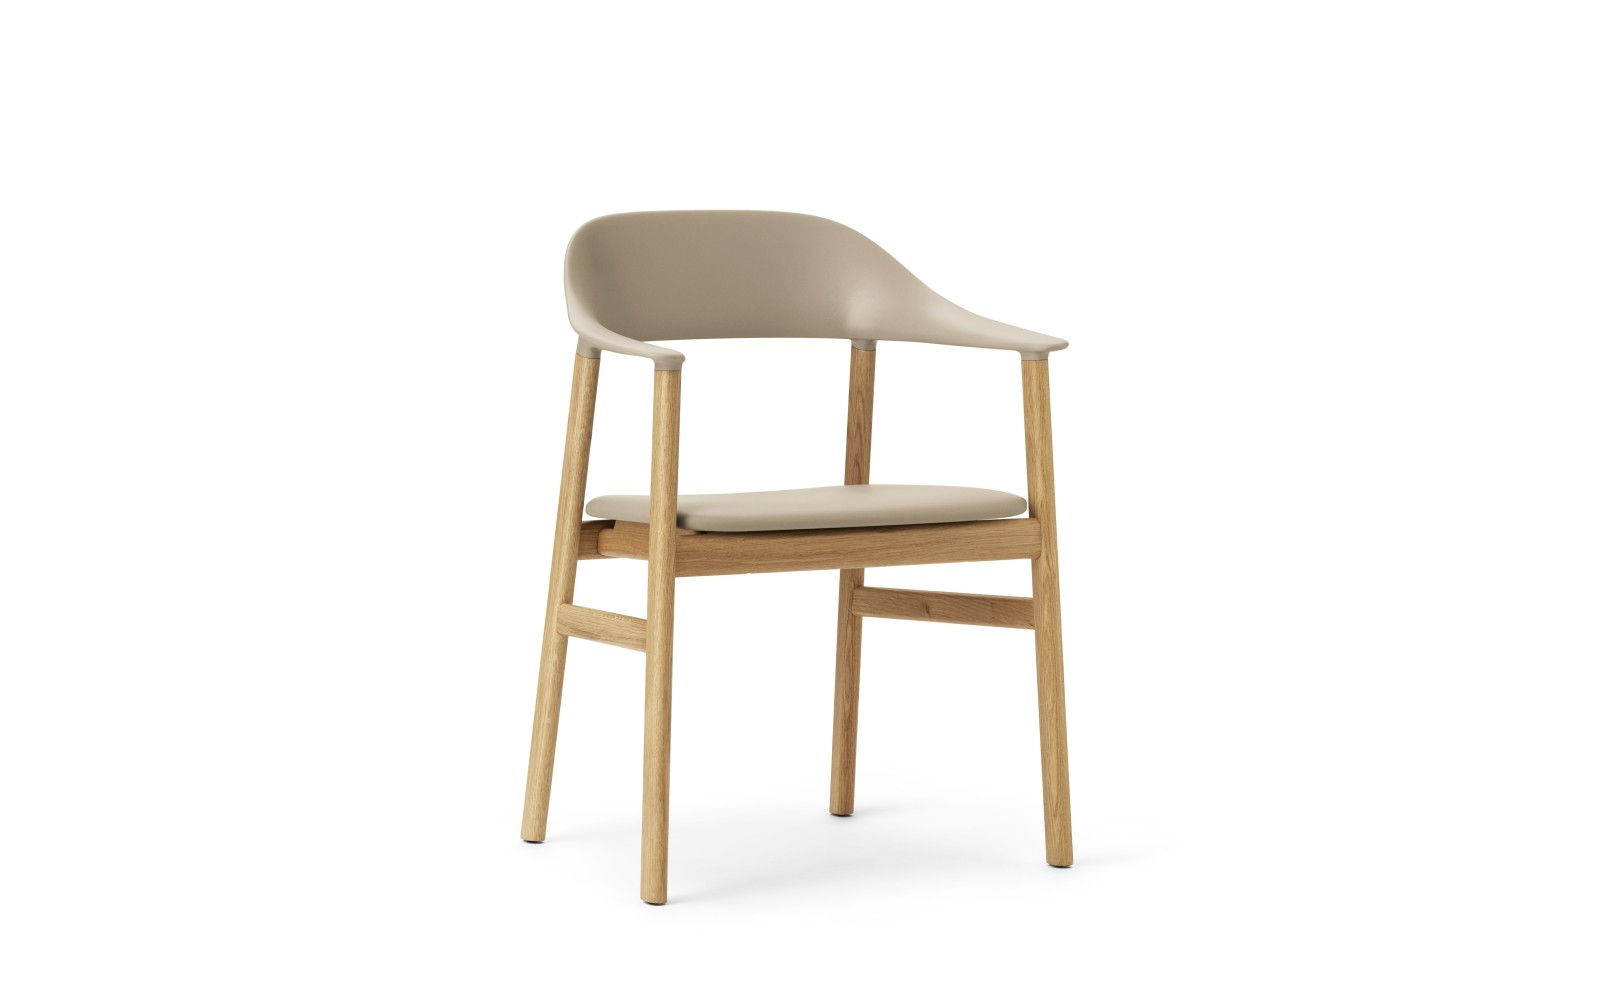 Herit Dining Chair with Armrests and Upholstered Seat Spectrum Leather Sand, Oak